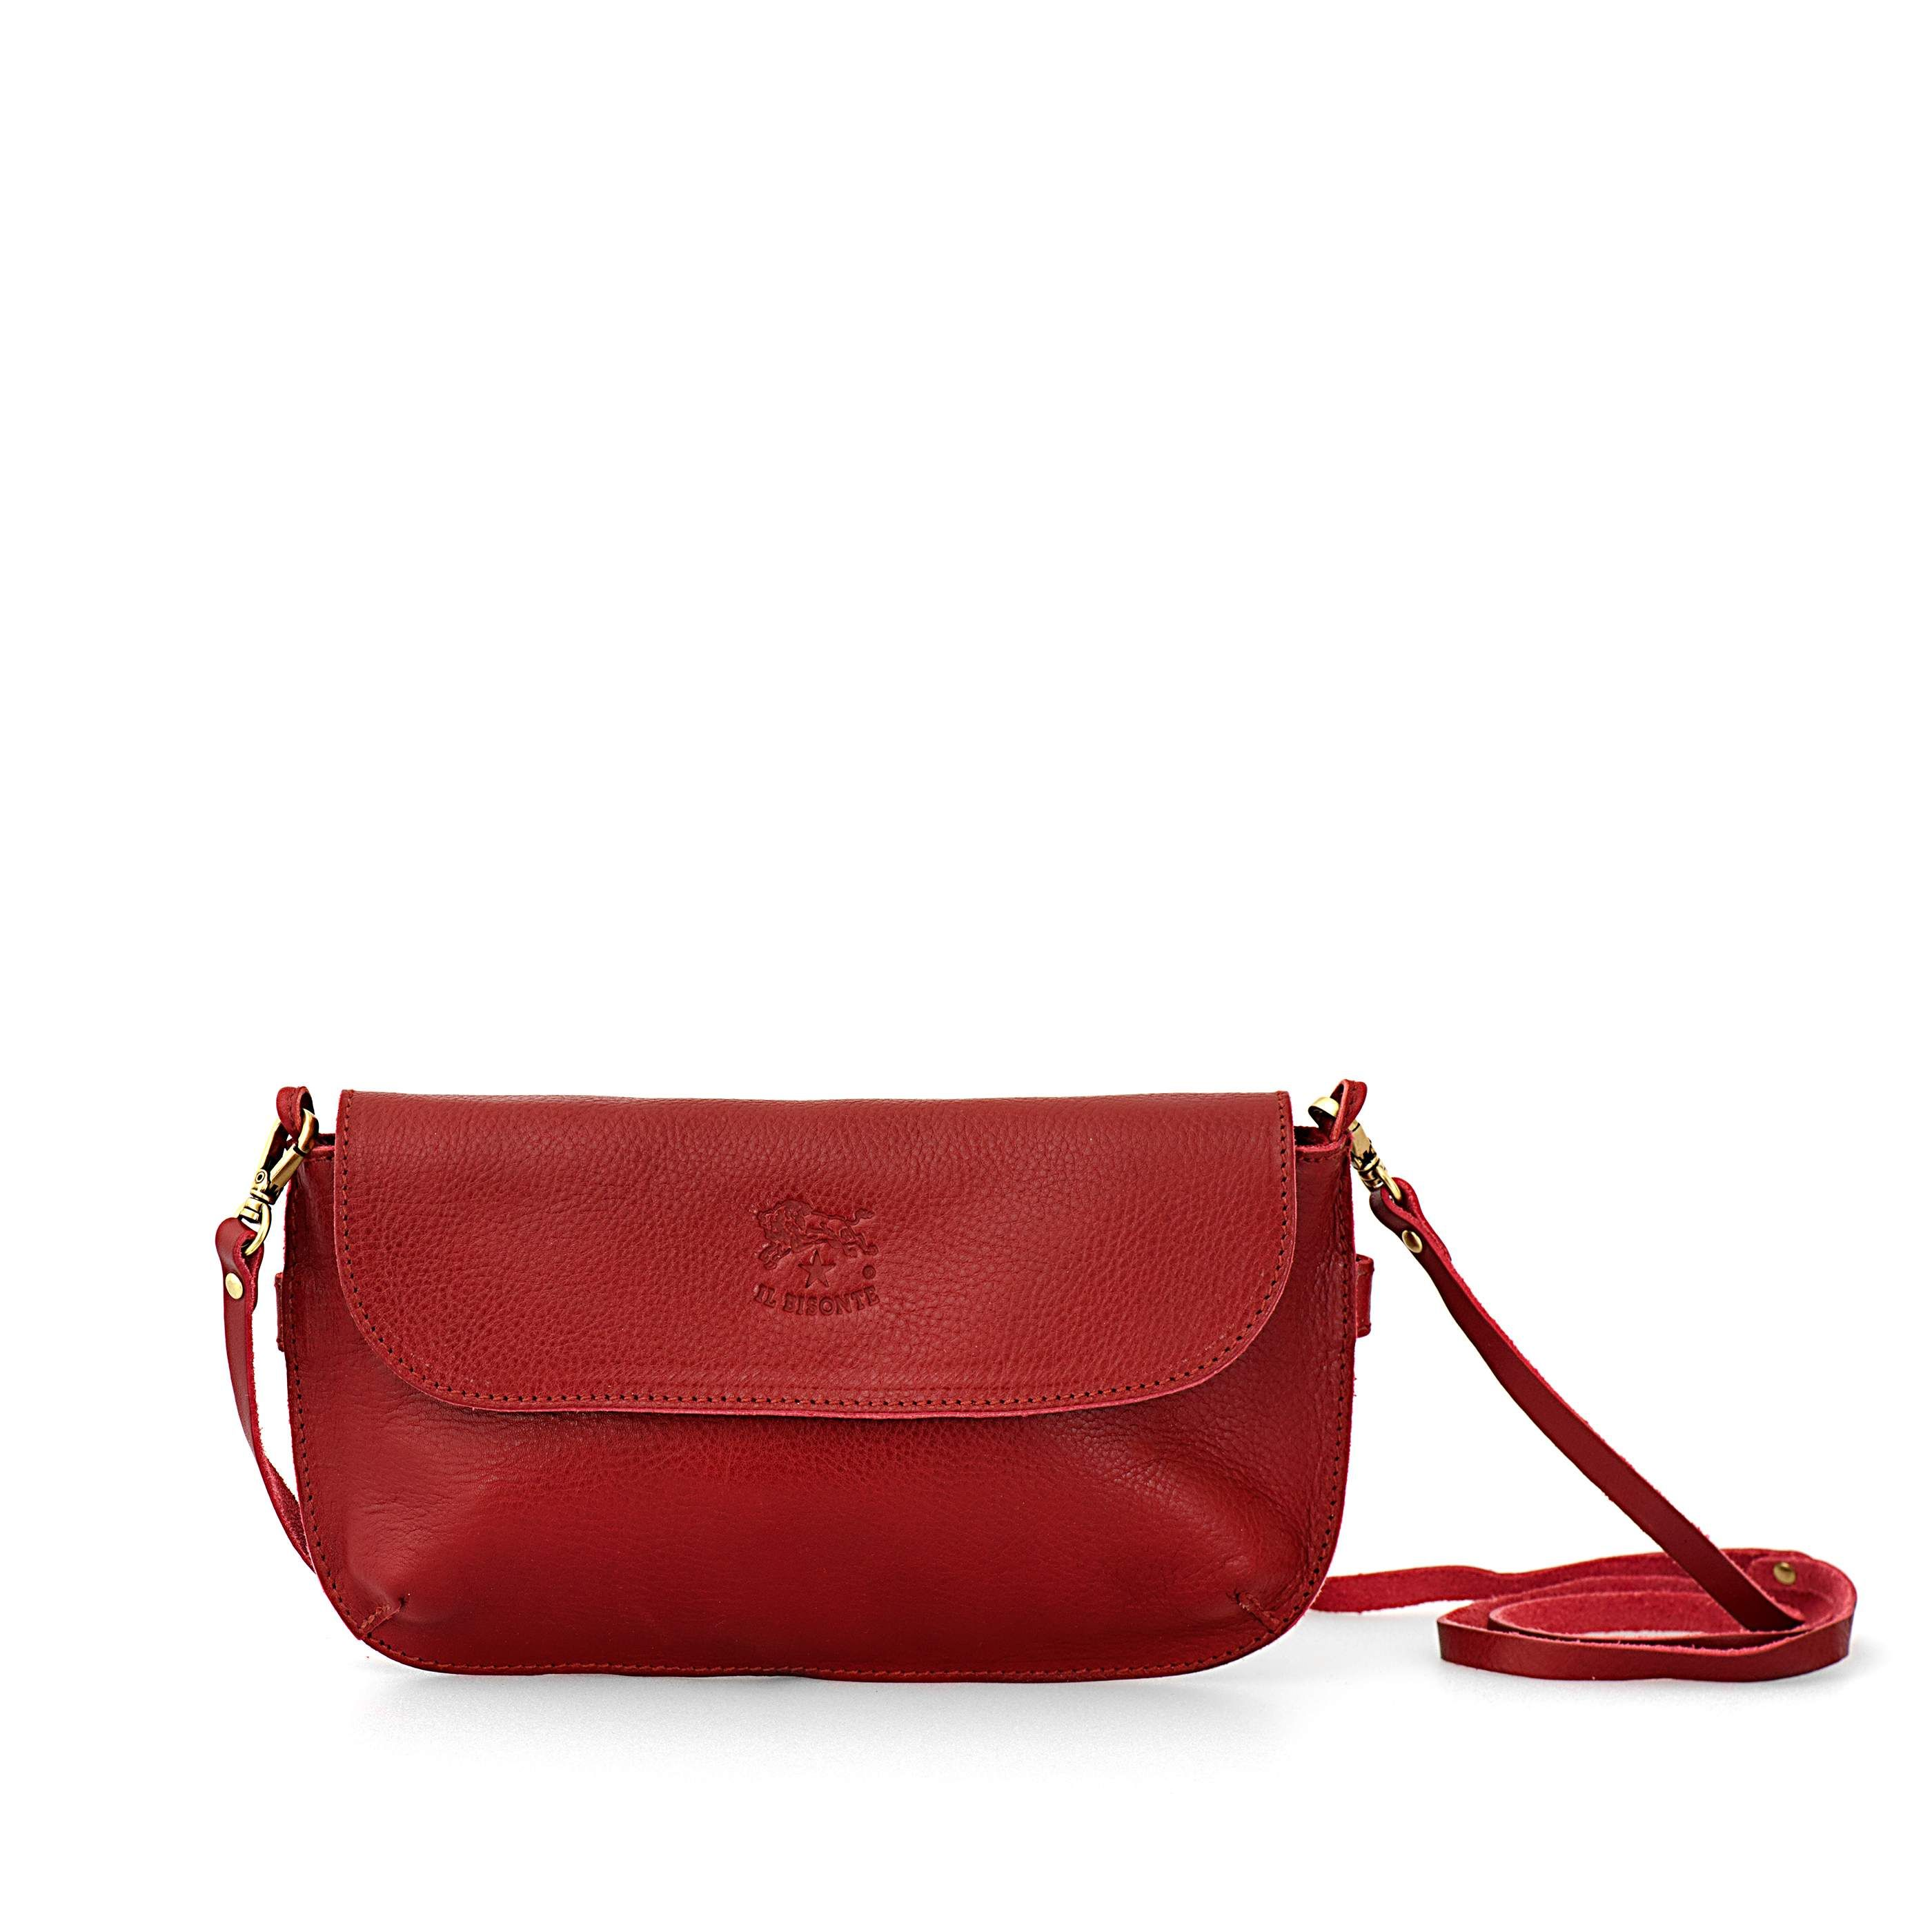 Woman s Clutch Bag in Cowhide Leather A2319 (color Red) - IlBisonte ... fde781055e3a5